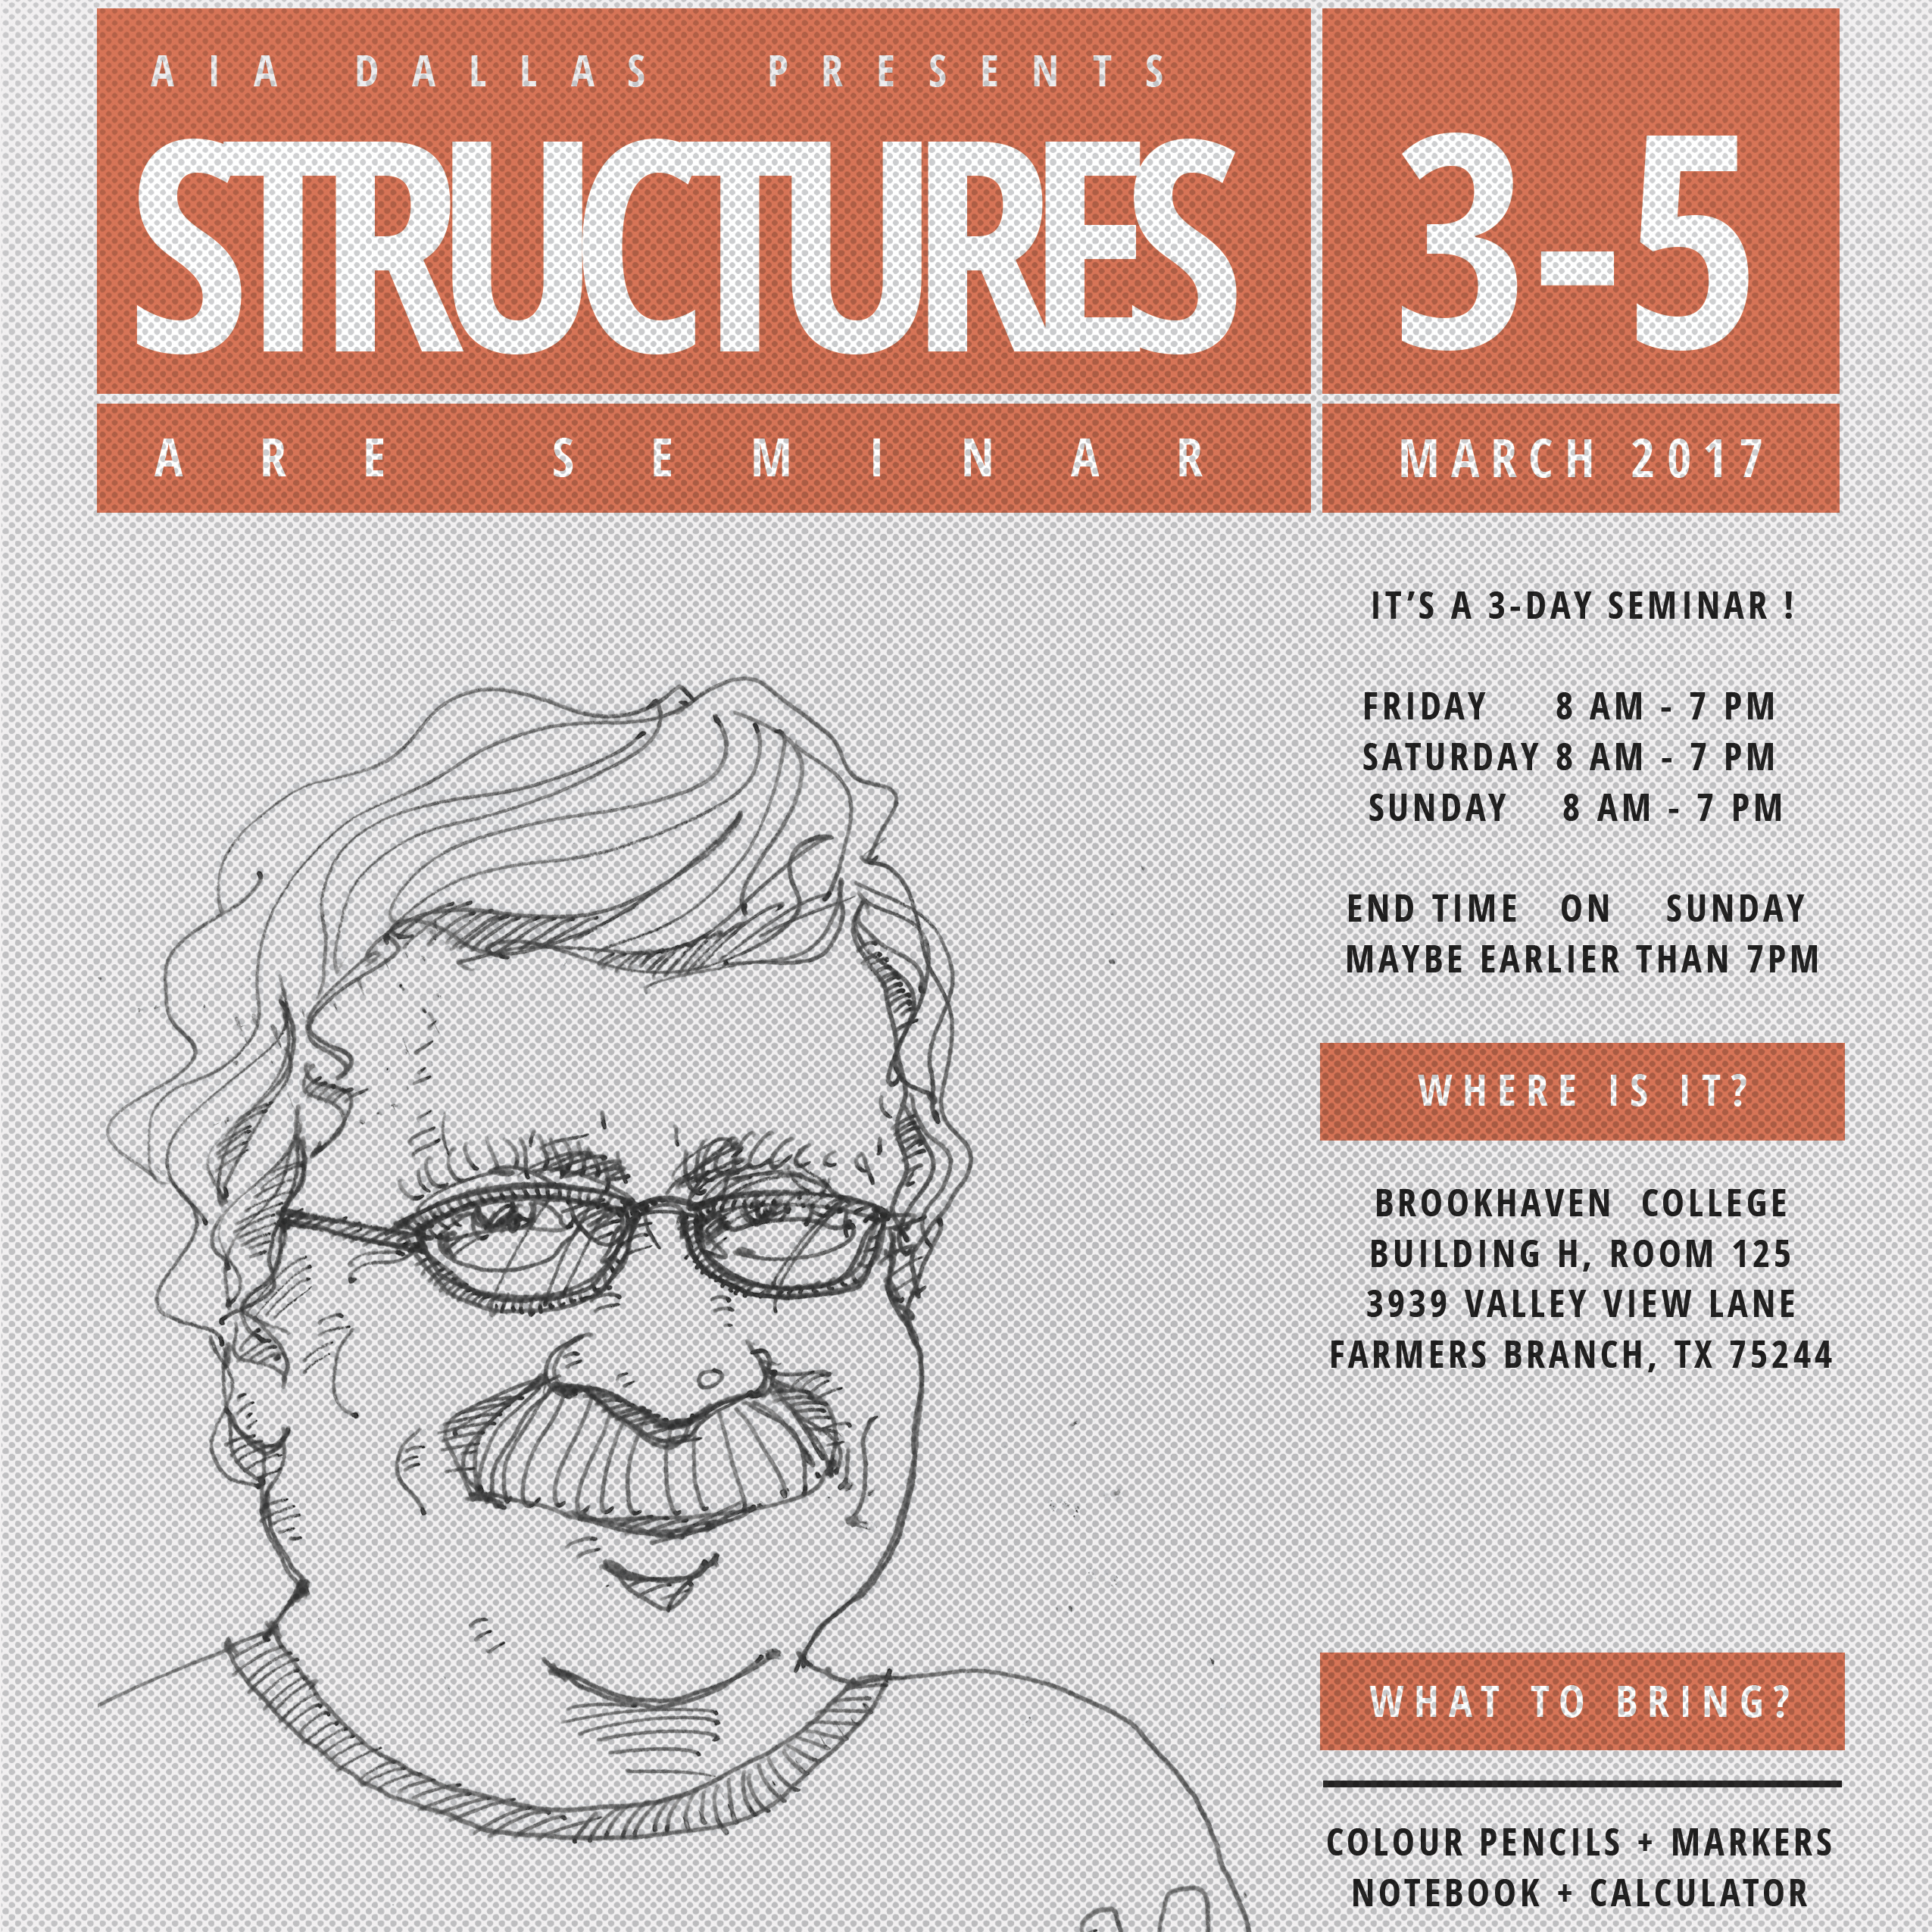 ARE 4.0 Structural Systems Seminar with Professor David Thaddeus, AIA, NCARB